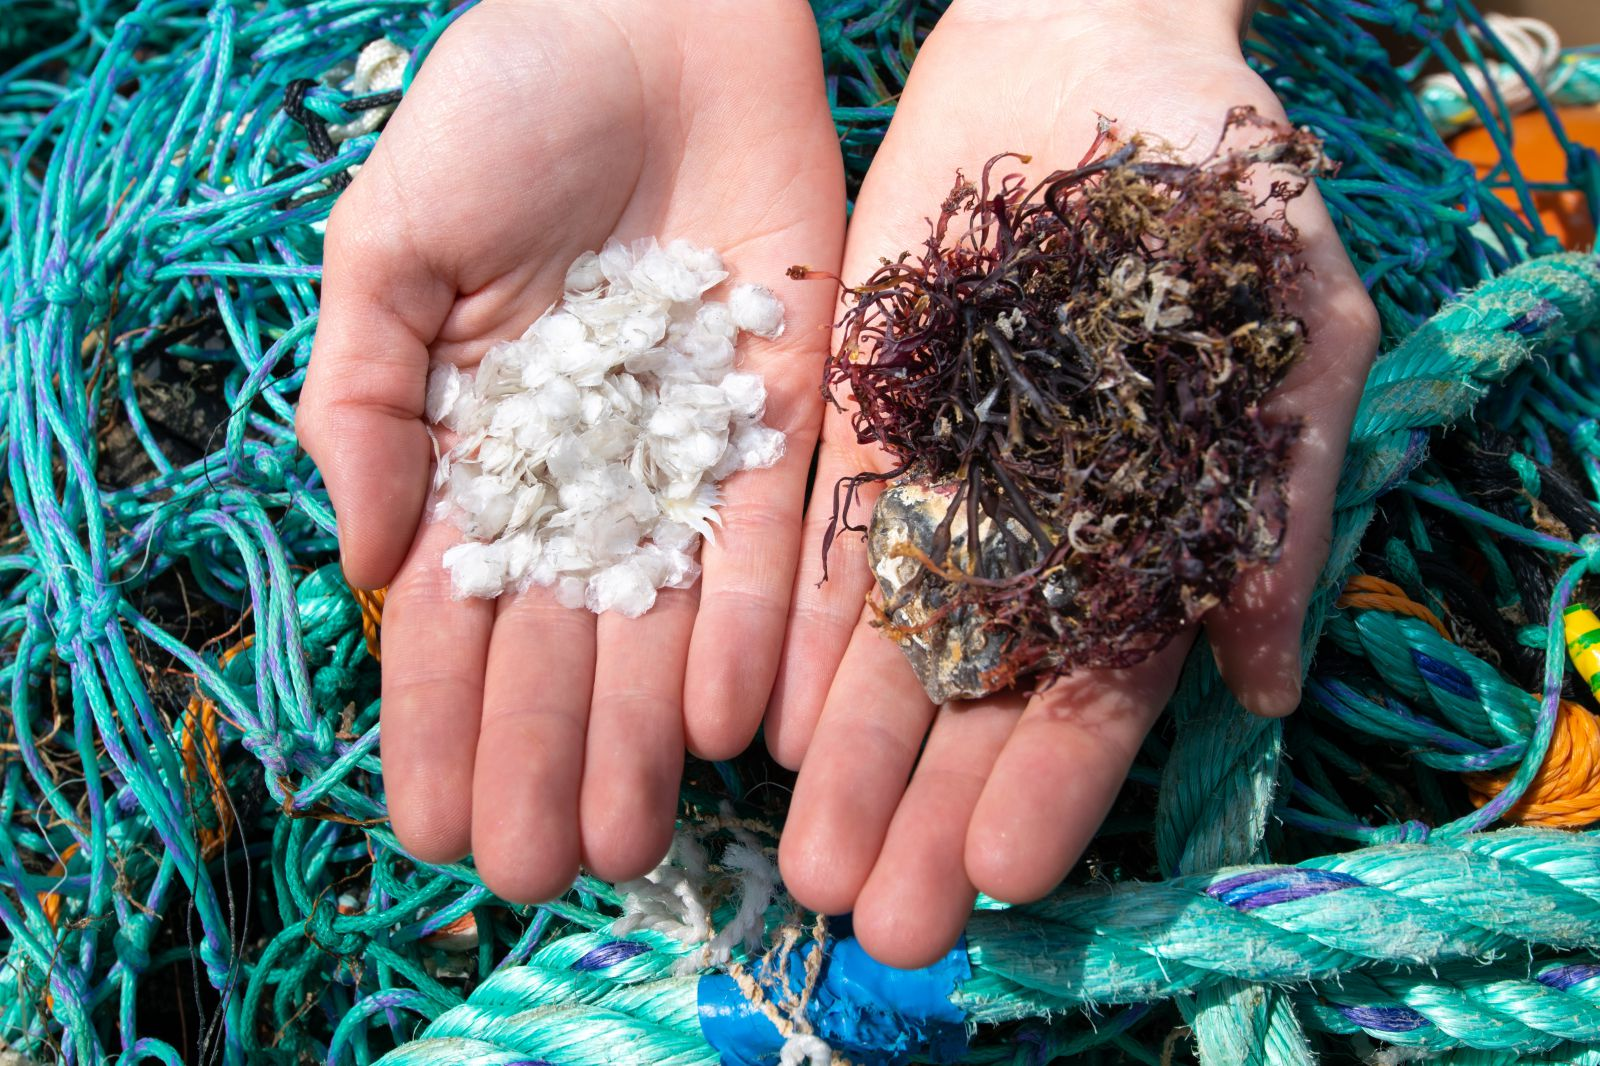 Lucy holds materials used in her product, fish scales and seaweed